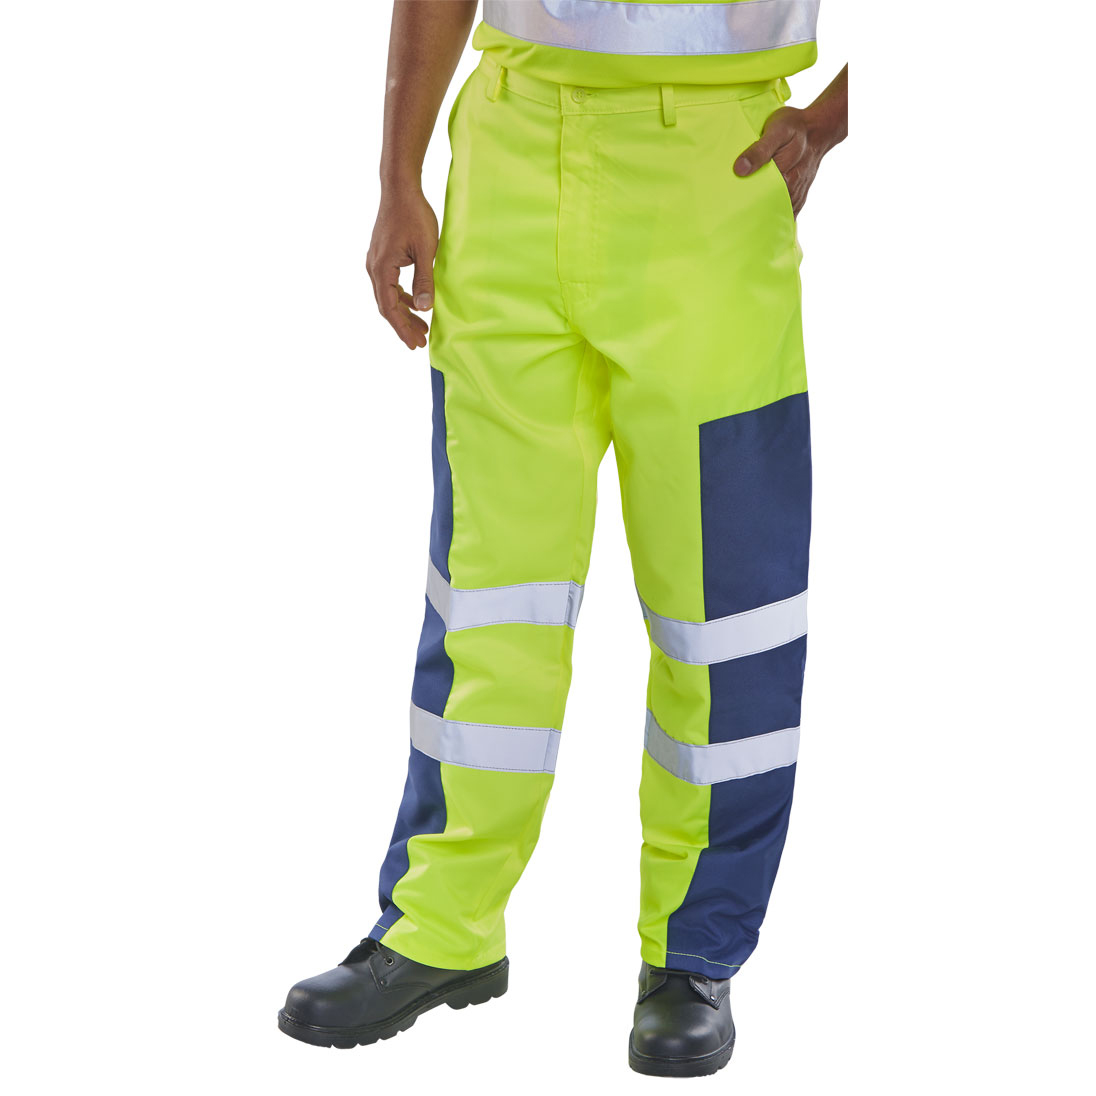 Click Workwear Trousers Hi-Vis Nylon Patch Yellow/Navy Blue 36 Ref PCTSYNNP36 Up to 3 Day Leadtime